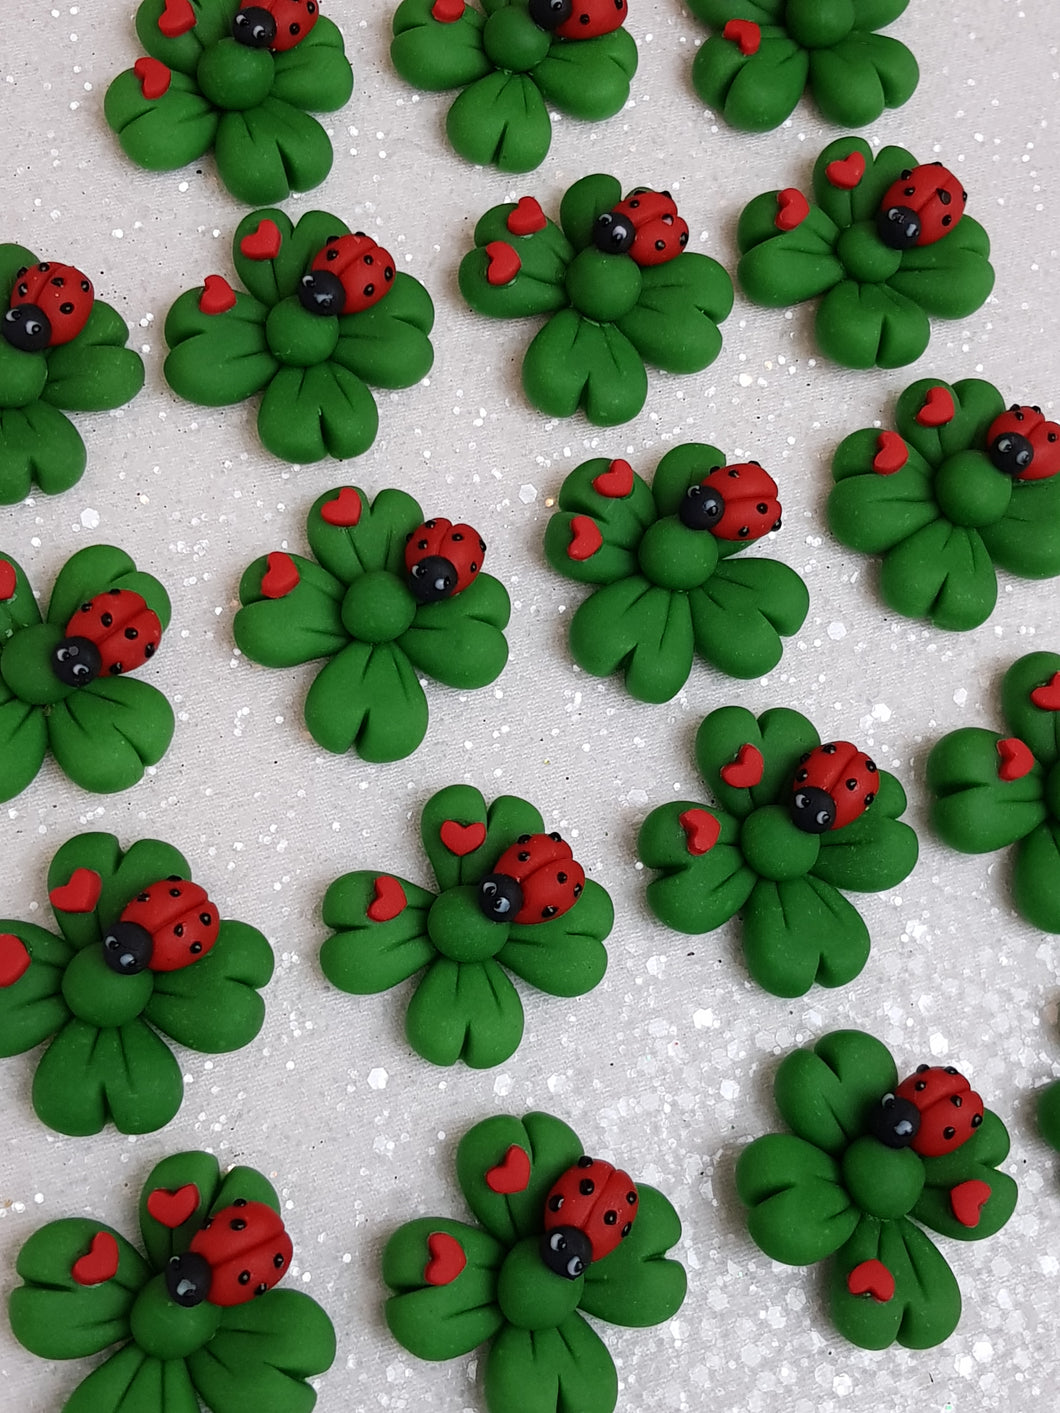 Clay Charm Embellishment - NEW SHAMROCK LADYBUG - Crafty Mood